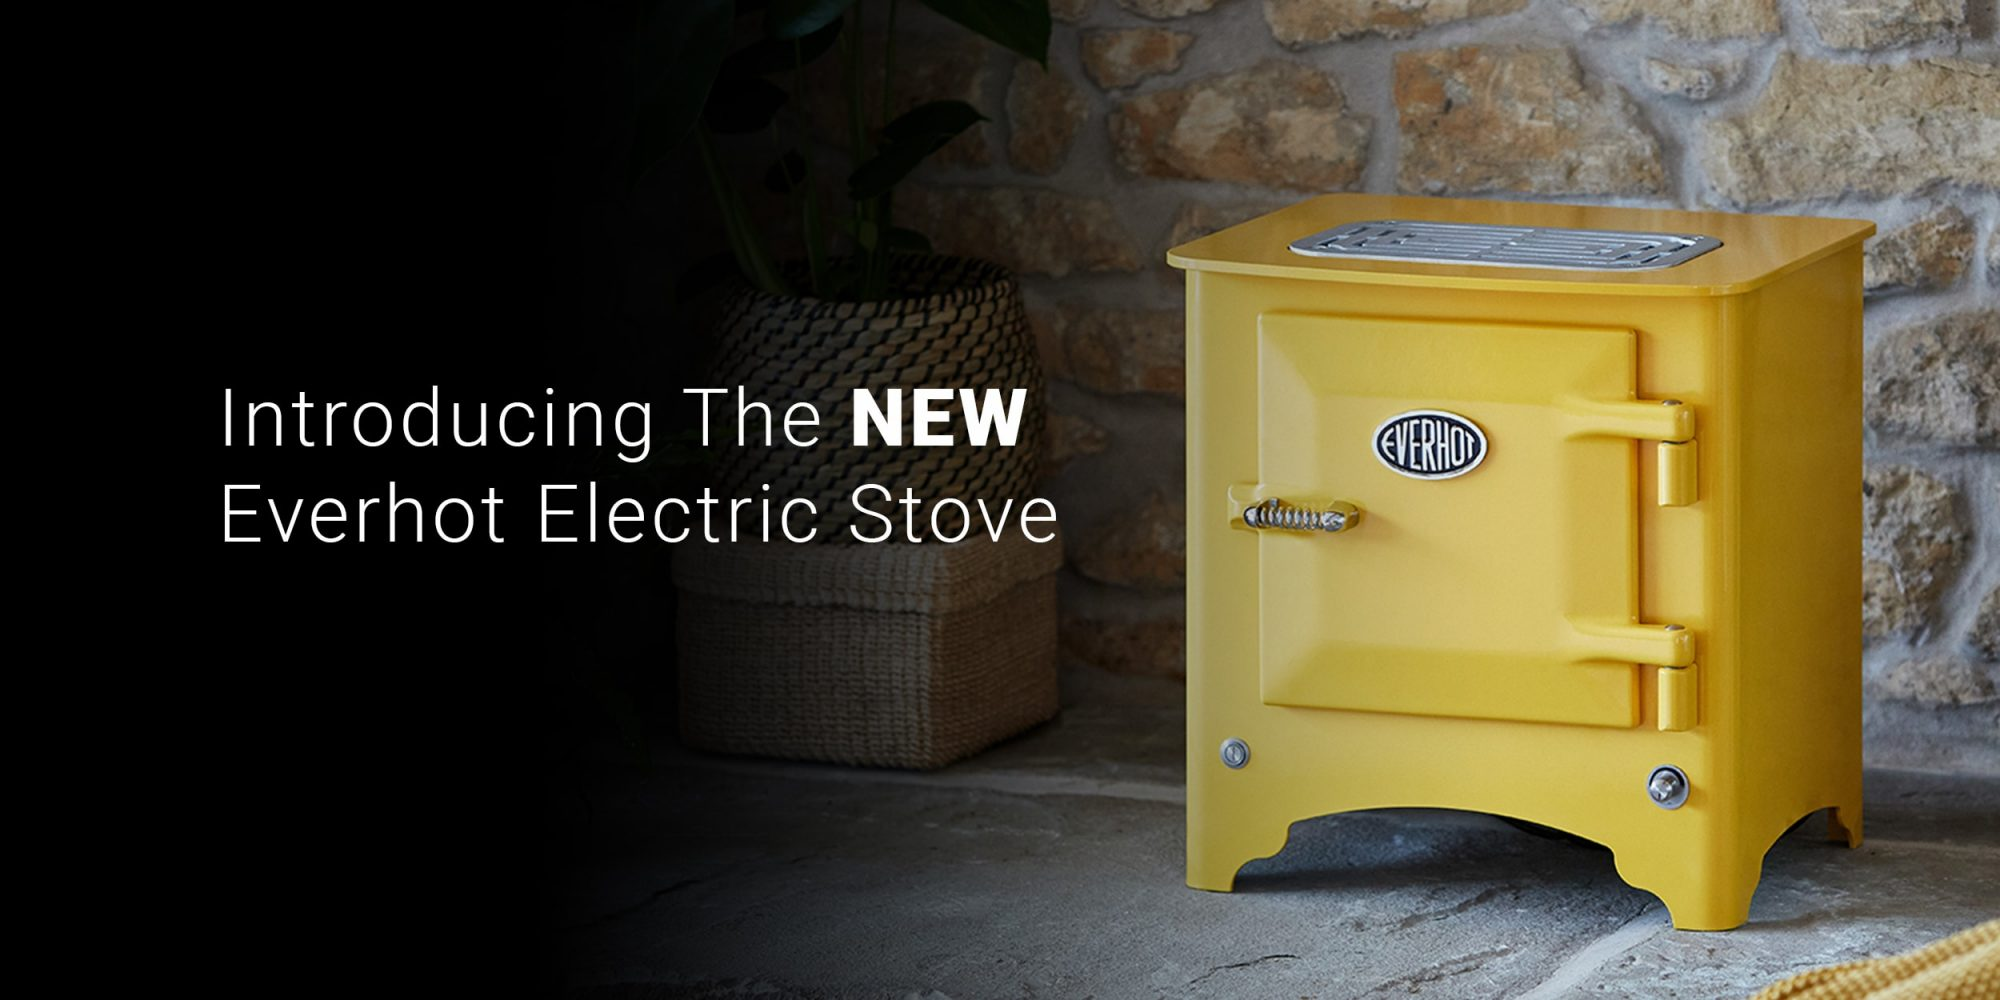 The NEW Everhot Electric Stove